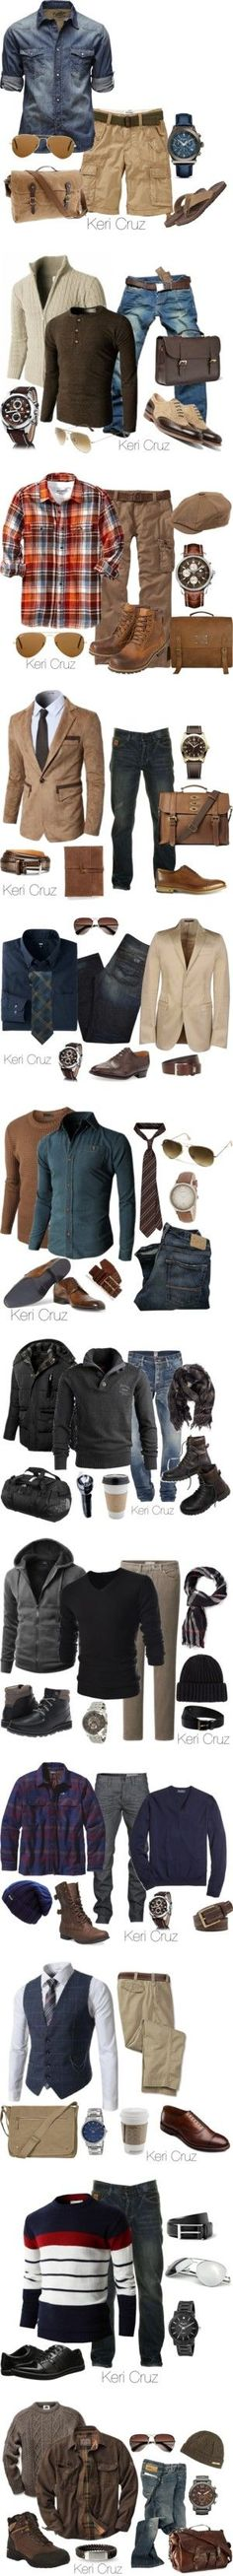 Men's Fashion Sets by Keri Cruz by keri-cruz on Polyvore featuring Old Navy, Jack & Jones, Salvatore Ferragamo, Ray-Ban, J.Crew, Kenneth Cole Reaction, women's clothing, women's fashion, women and female